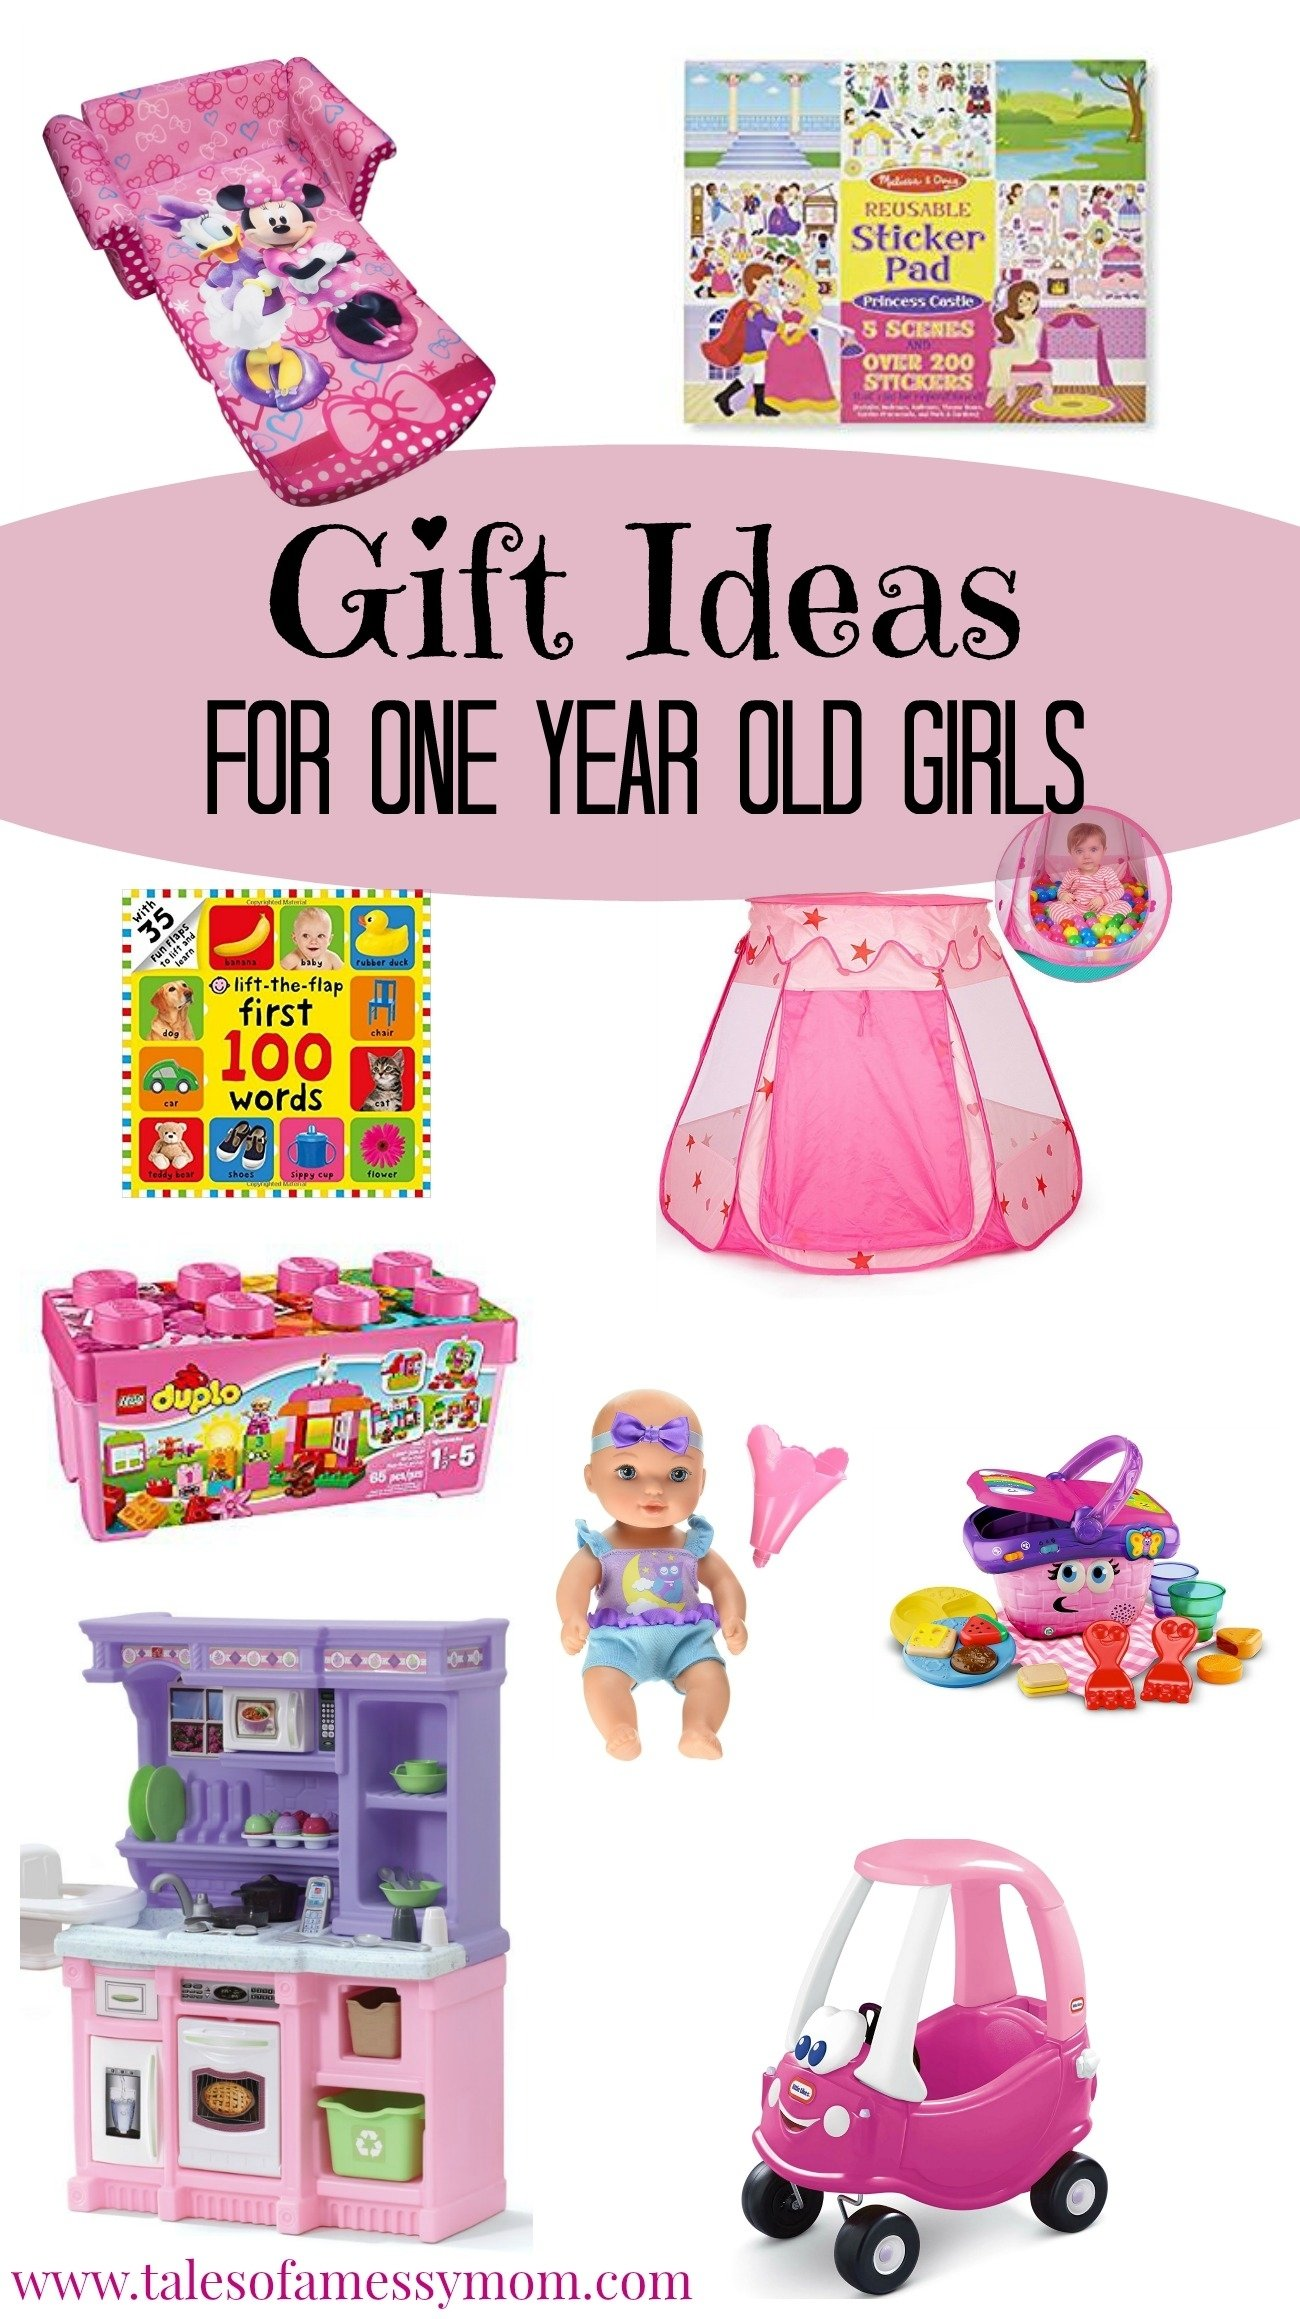 10 Ideal One Year Old Gift Ideas gift ideas for one year old girls tales of a messy mom 3 2020